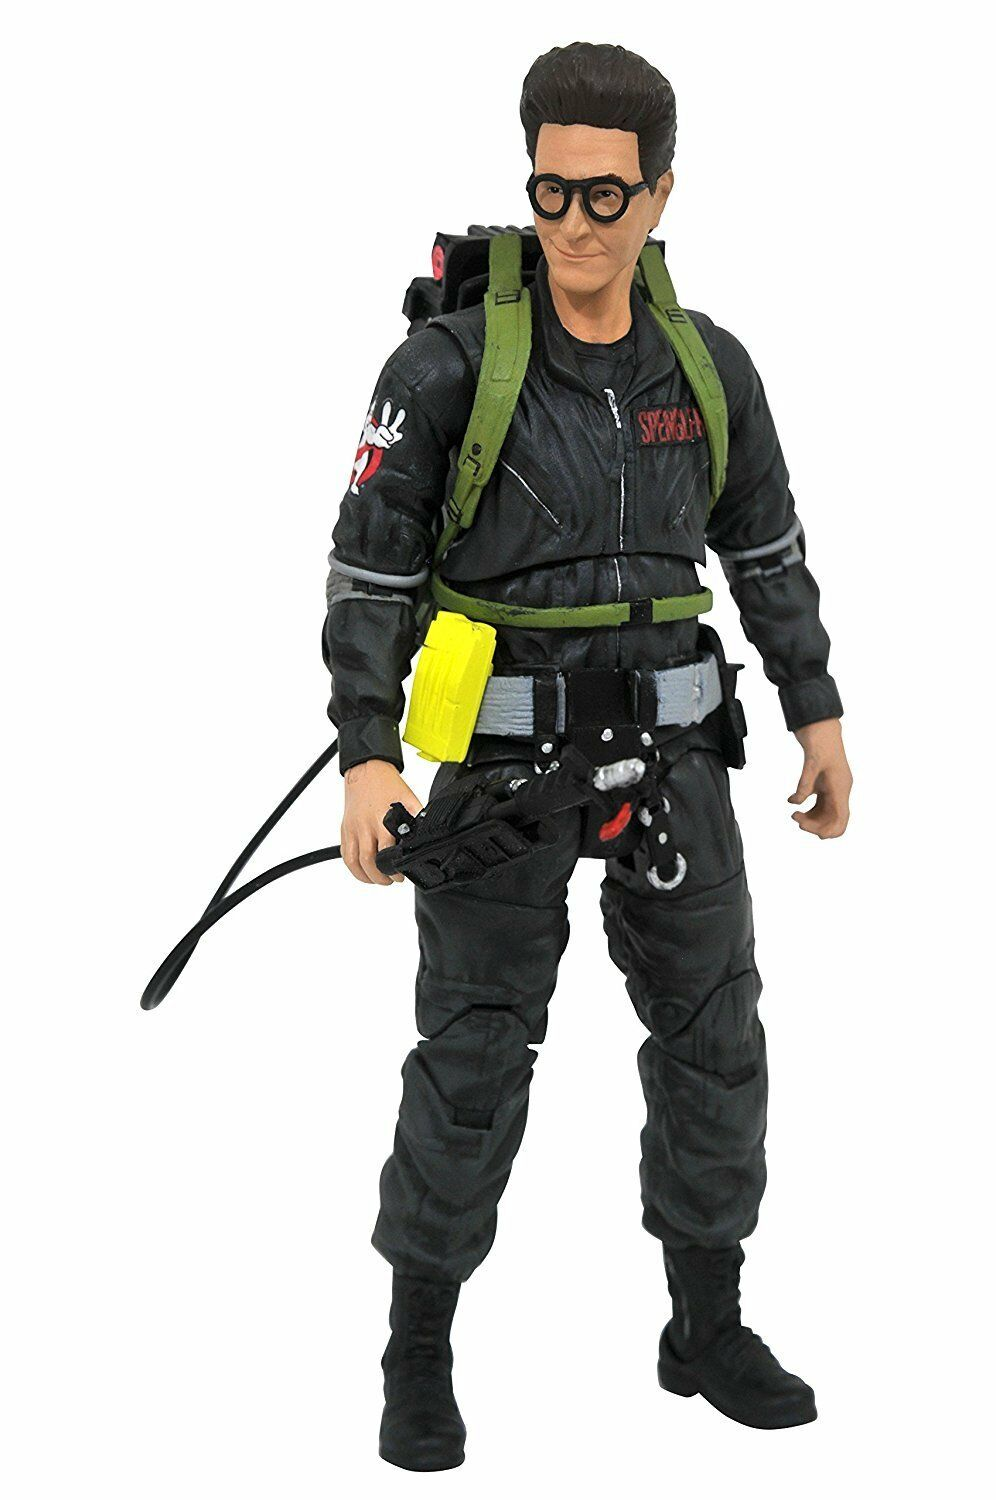 Diamond Select Toys Ghostbusters 2 Select  Egon Spengler (Grey Outfit Version)